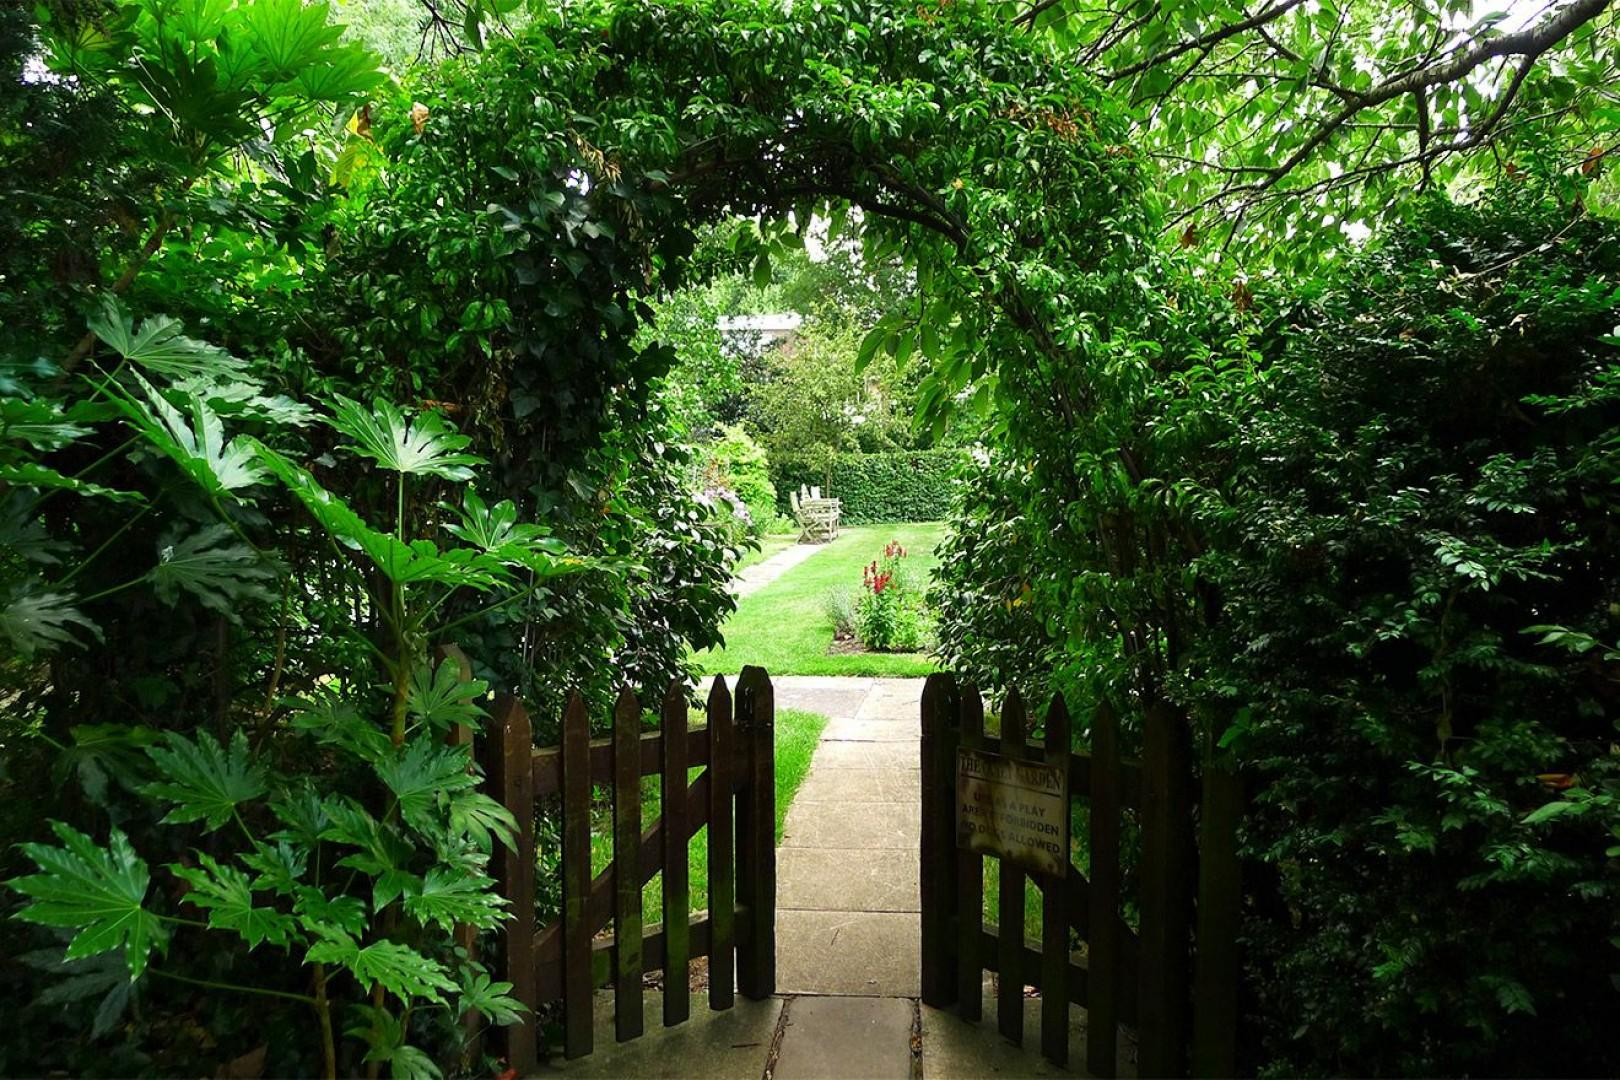 A secluded entrance to the shared garden